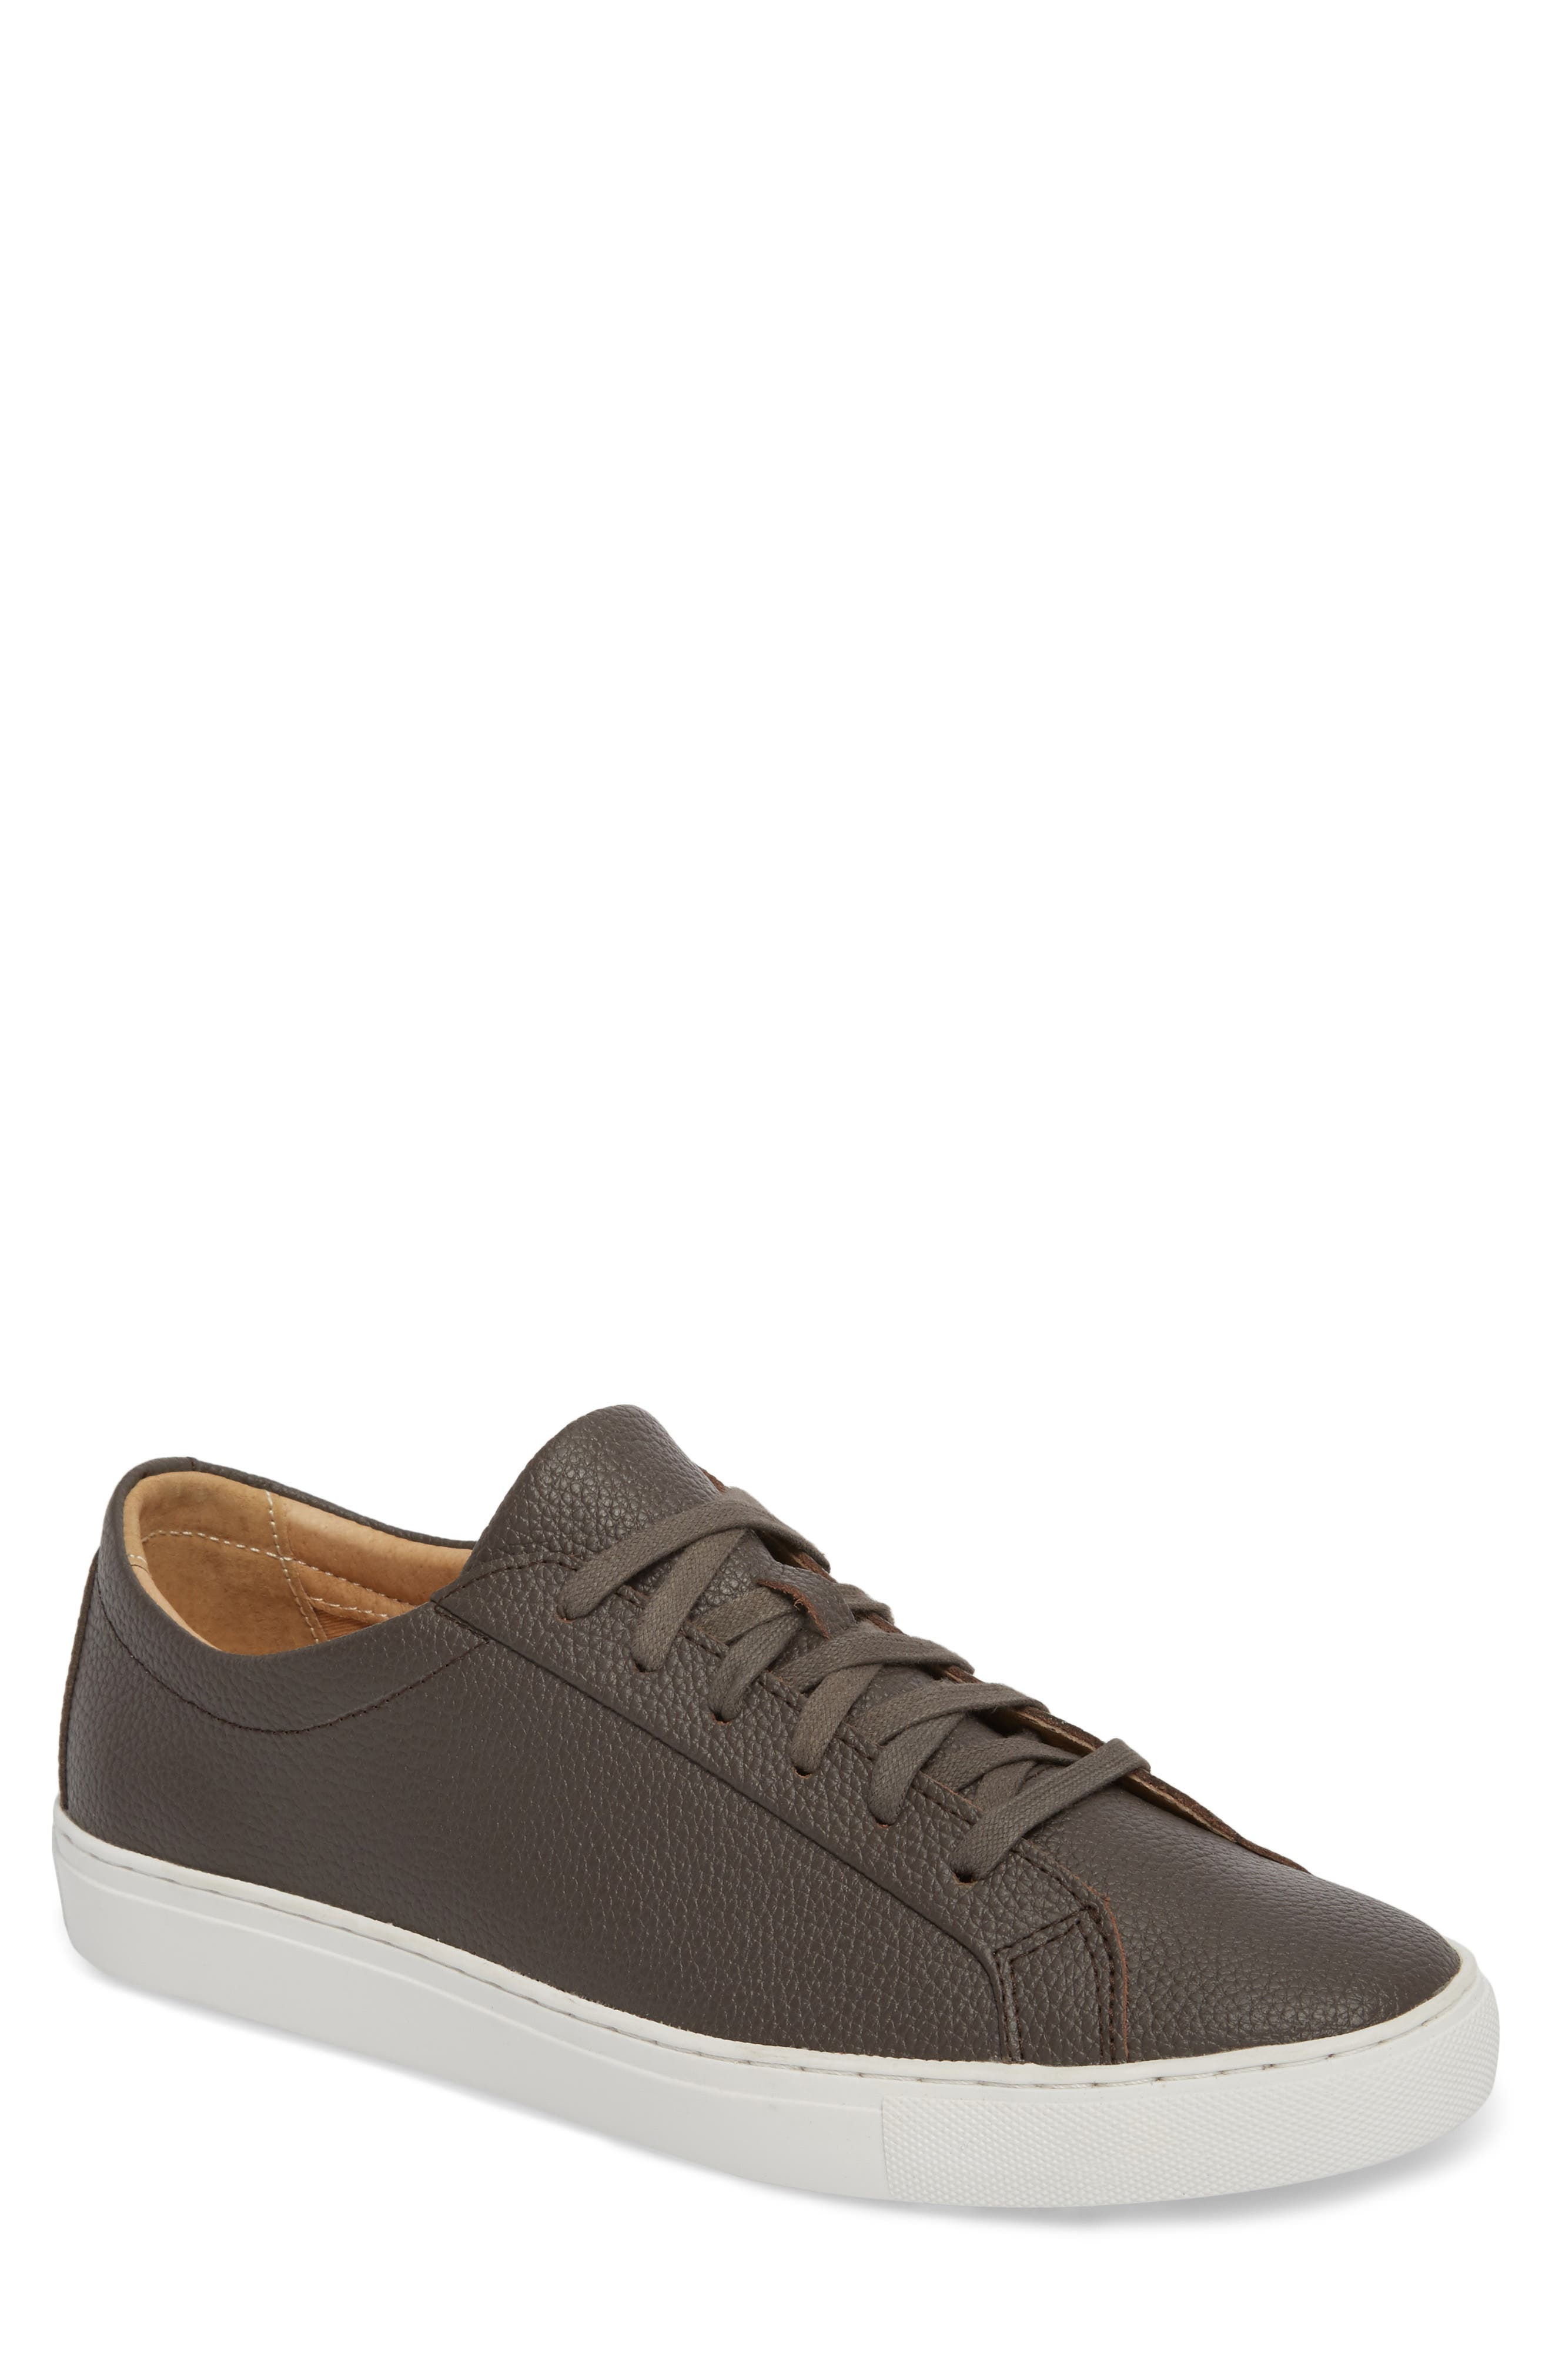 Kennedy Low Top Sneaker,                         Main,                         color, FALCON LEATHER